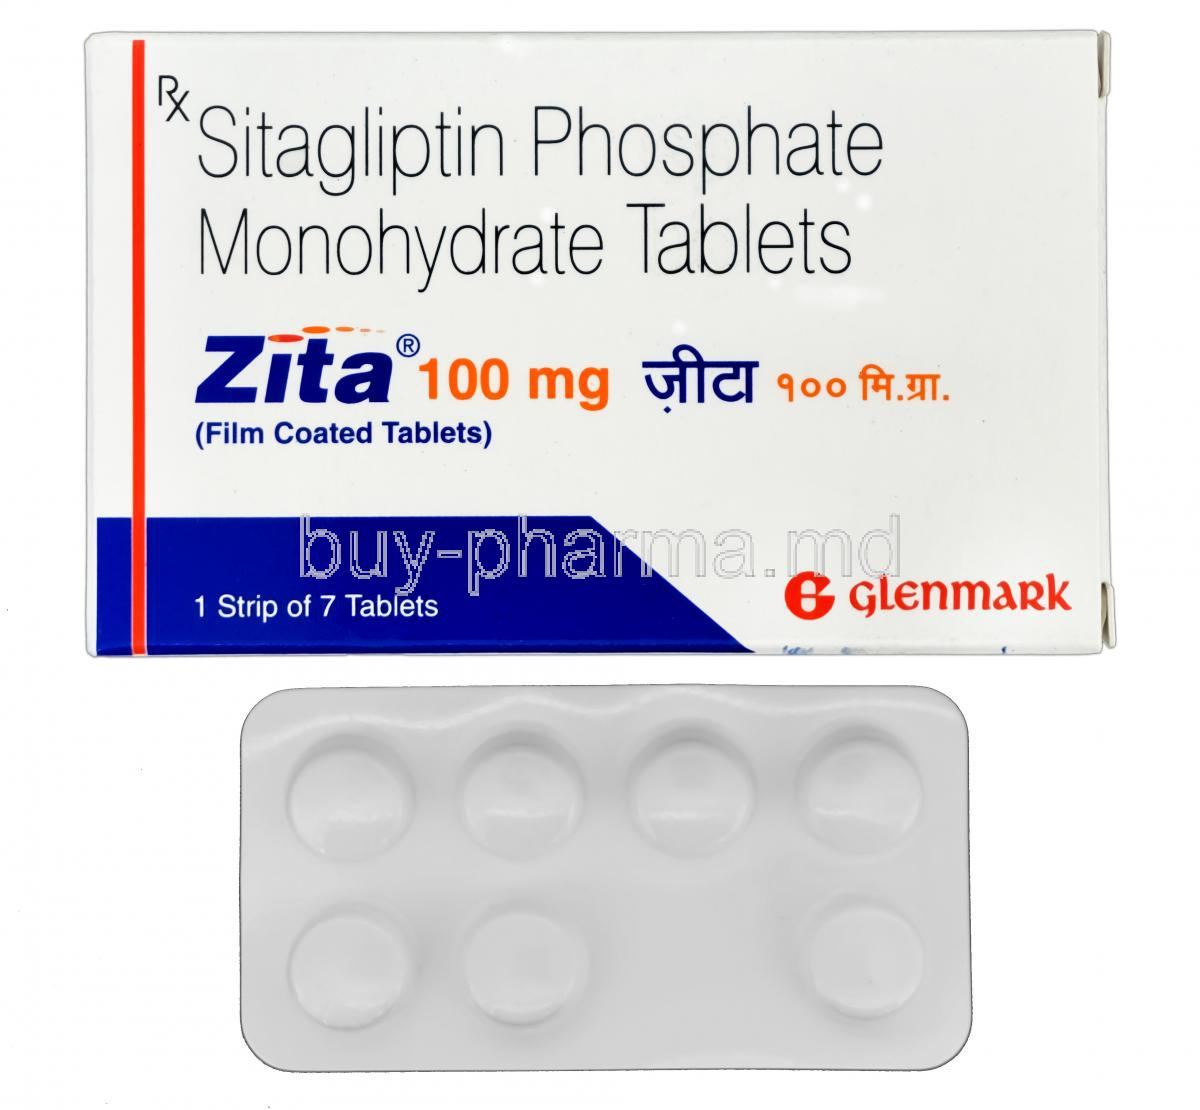 Ivermectin and praziquantel tablets